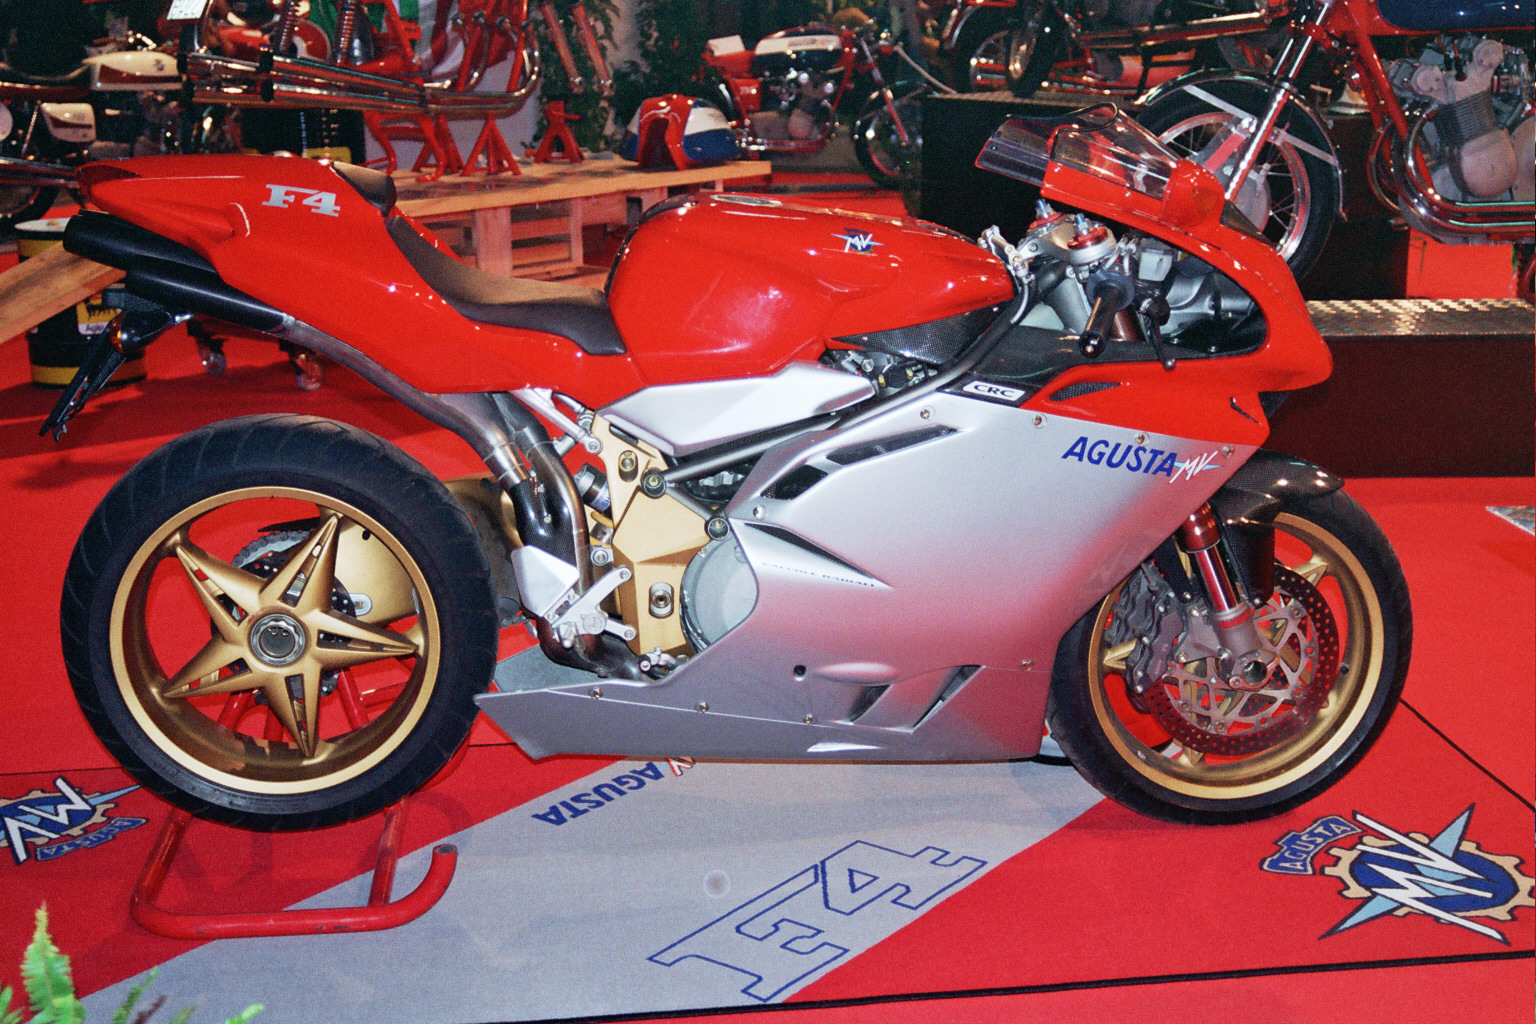 MV Agusta F4 1000 S 2006 images #113602